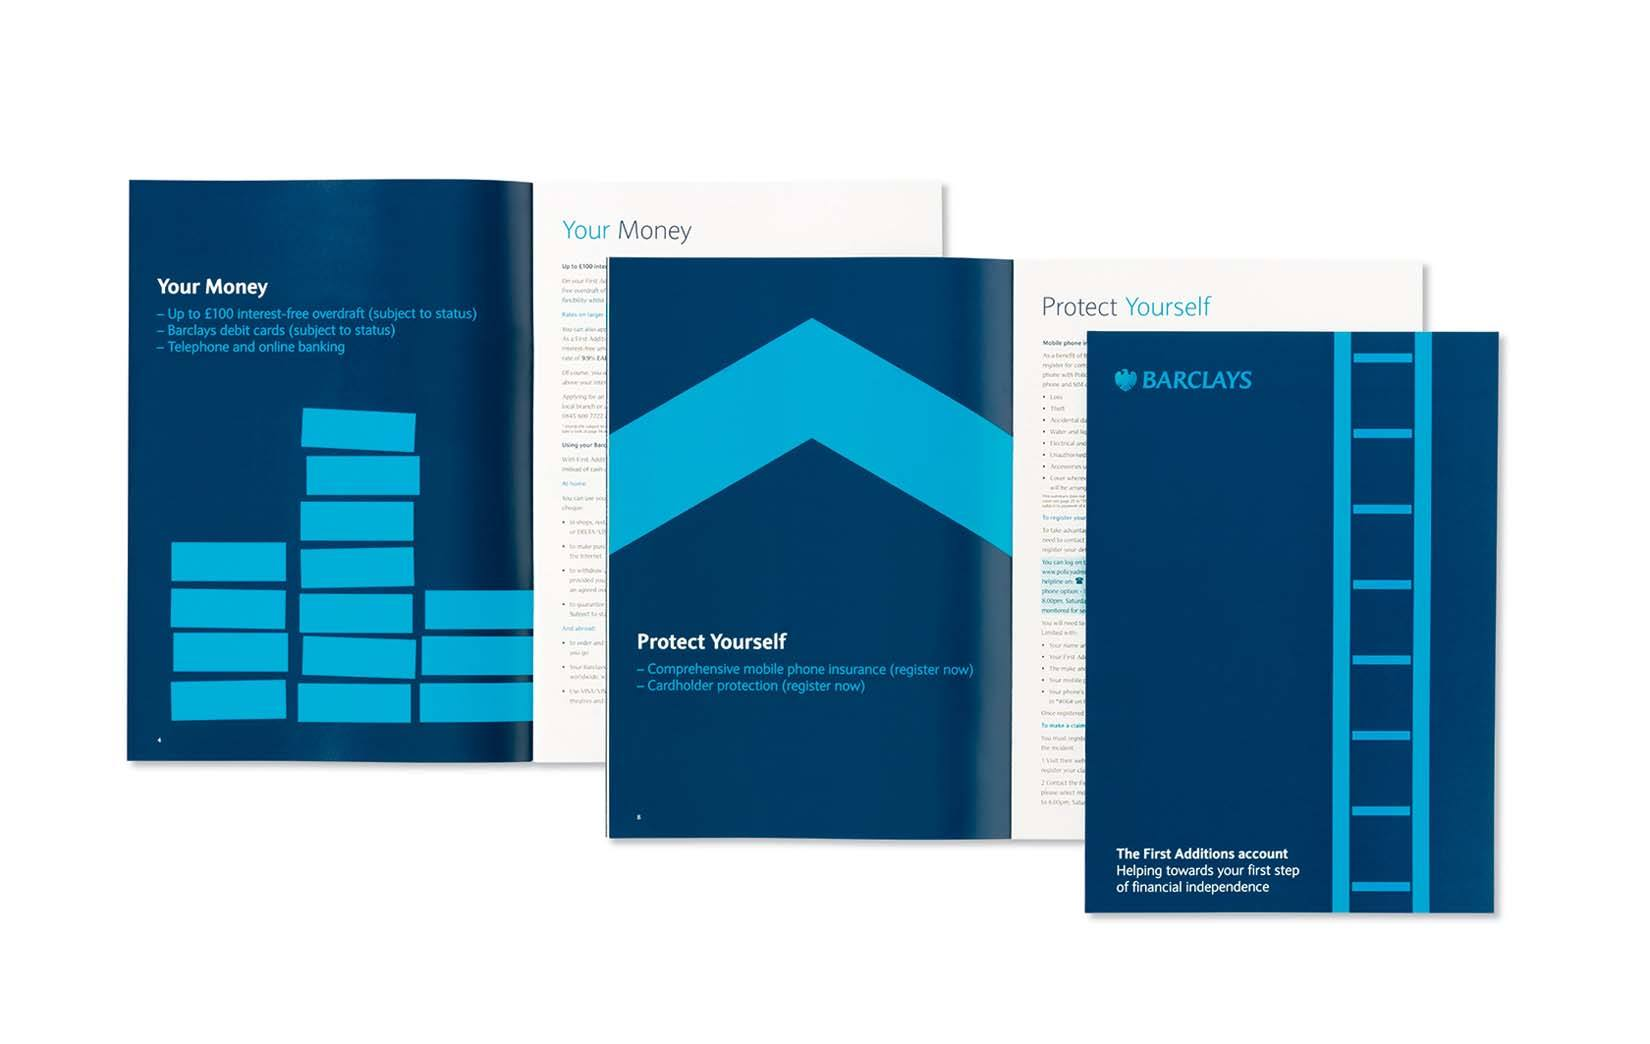 WMH-BARCLAYS-BROCHURES-WEB image